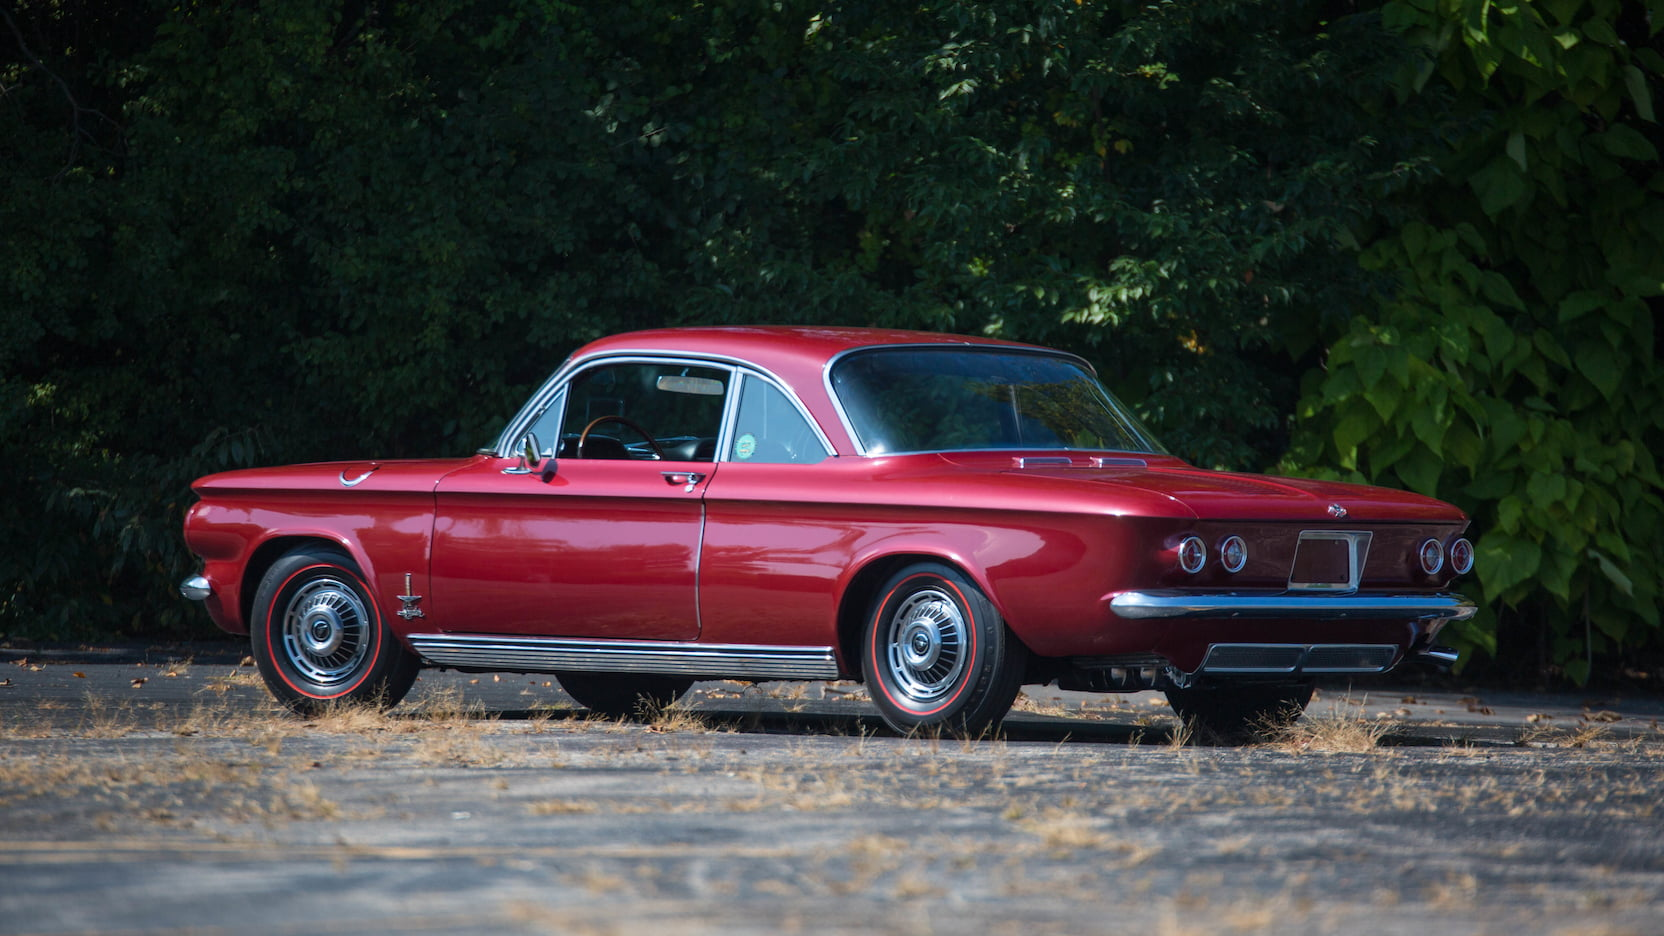 1963 Chevrolet Corvair rear 3/4